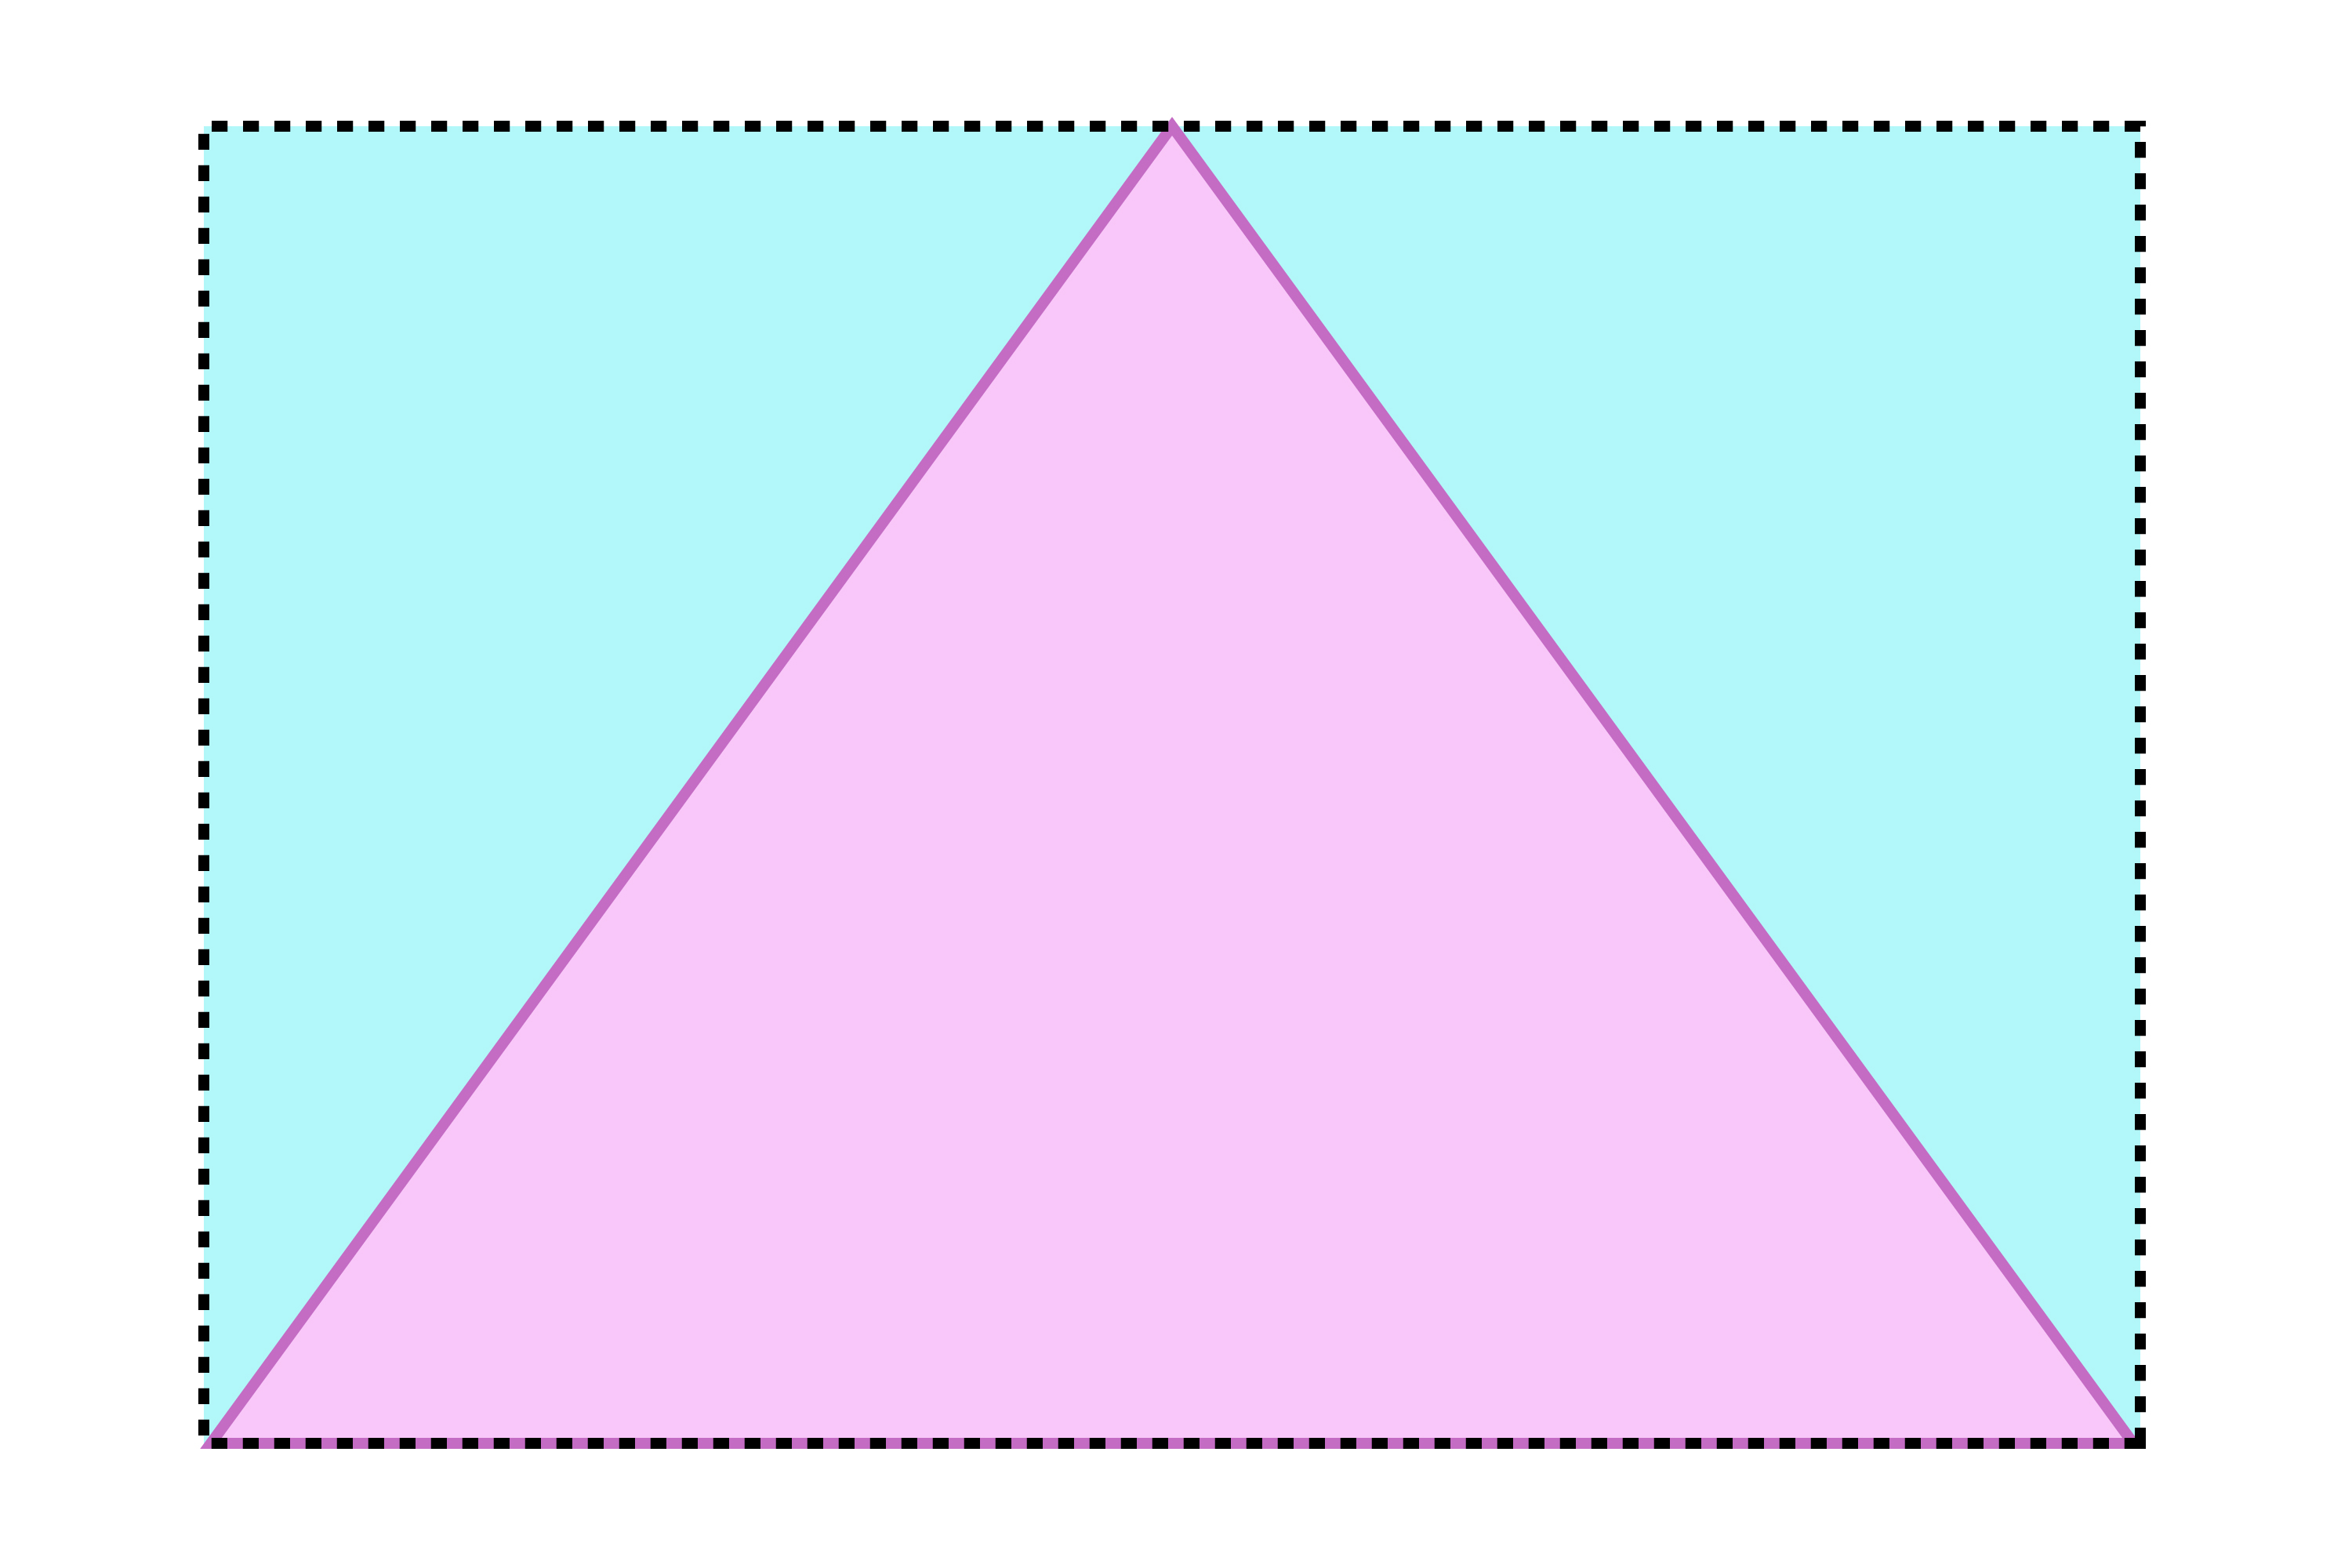 Turn the triangle into a rectangle and complete the sum, it makes the result a lot easier to understand